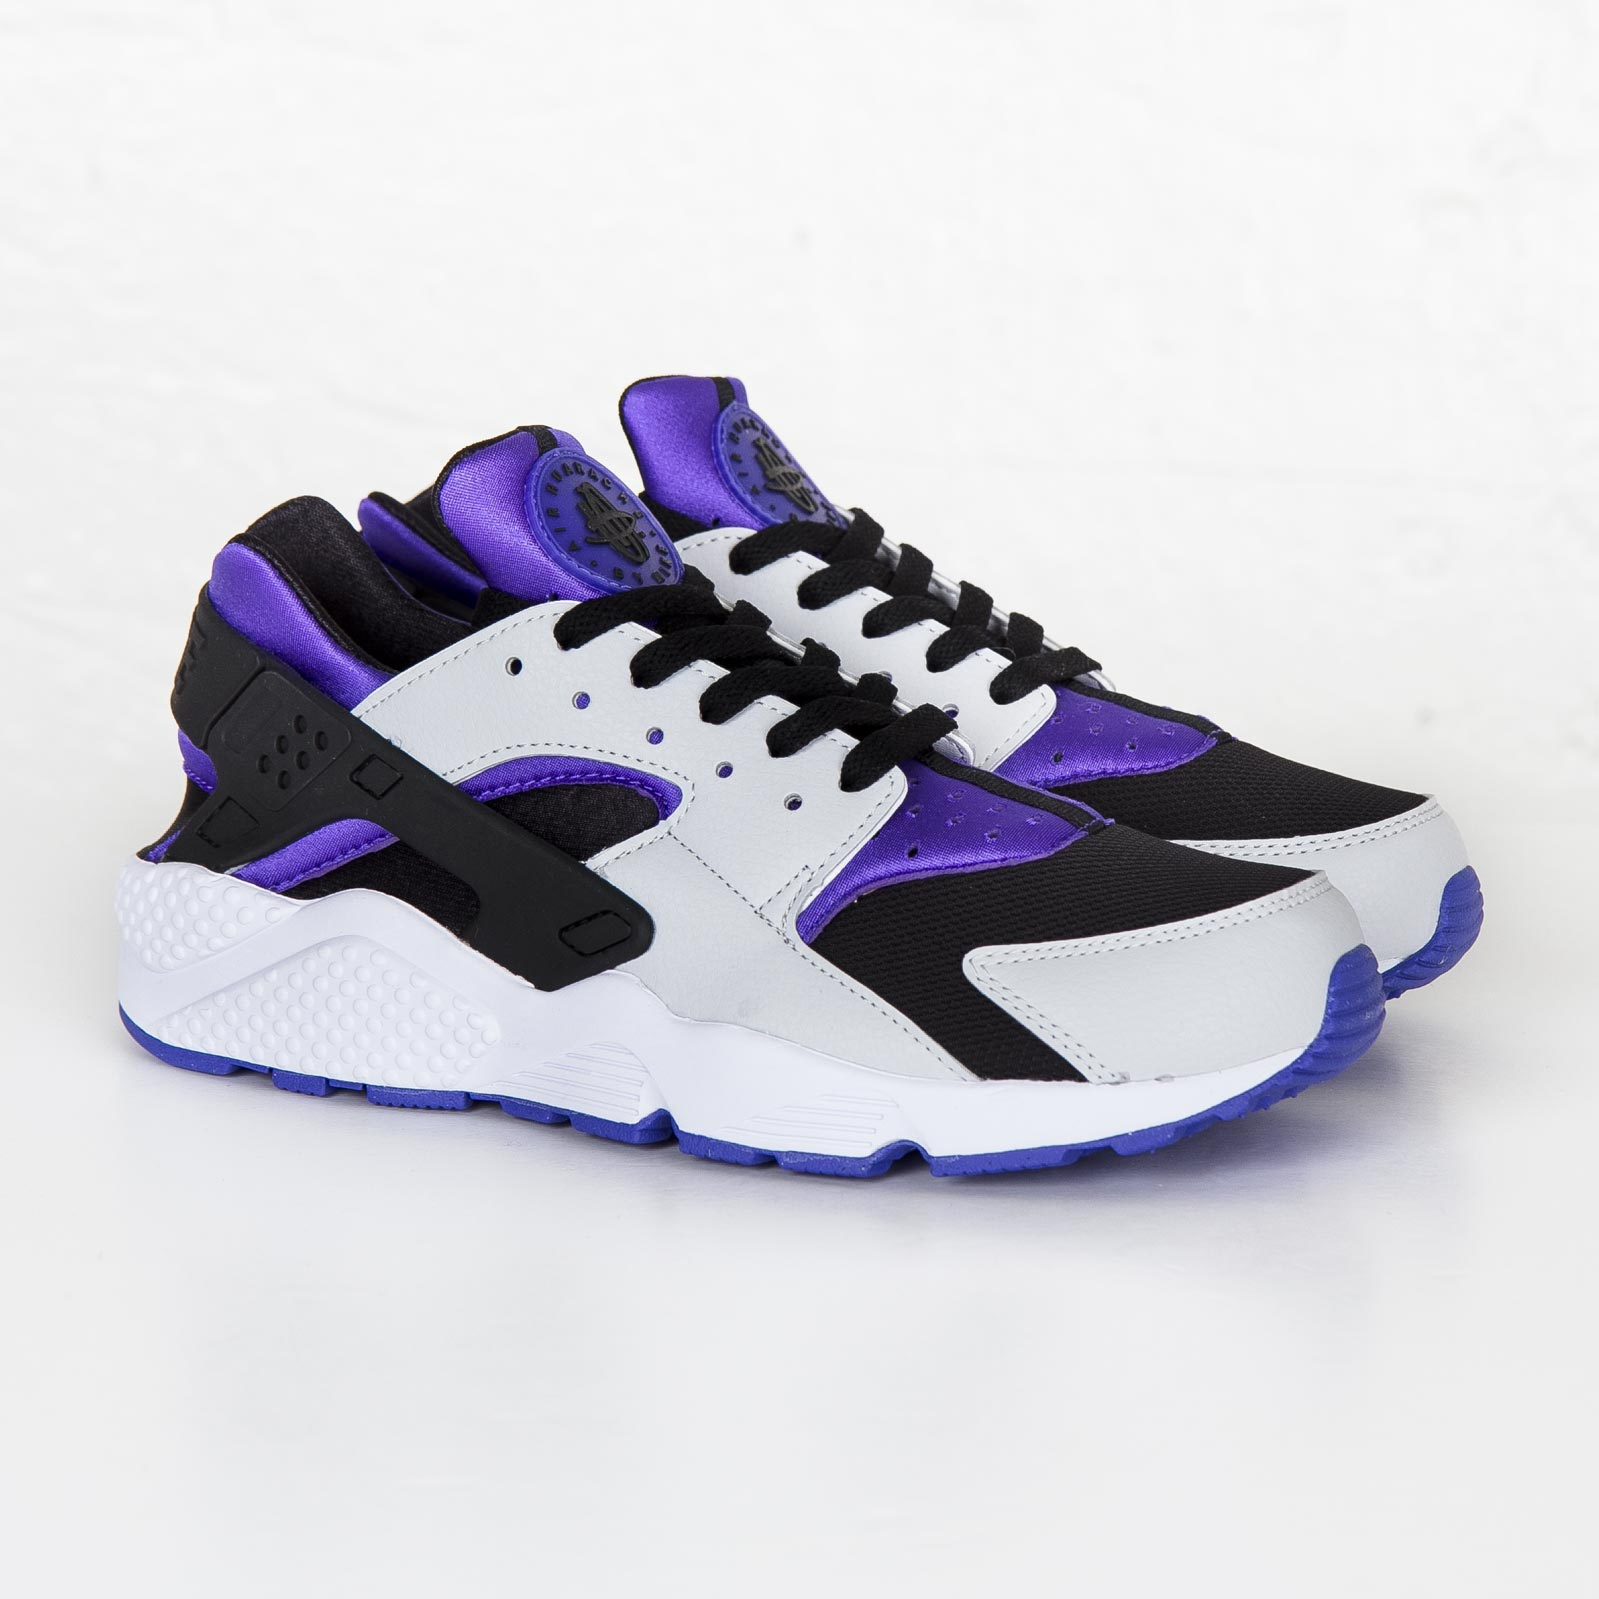 wholesale dealer 2bfd7 8d487 Nike Air Huarache - 318429-501 - Sneakersnstuff | sneakers ...